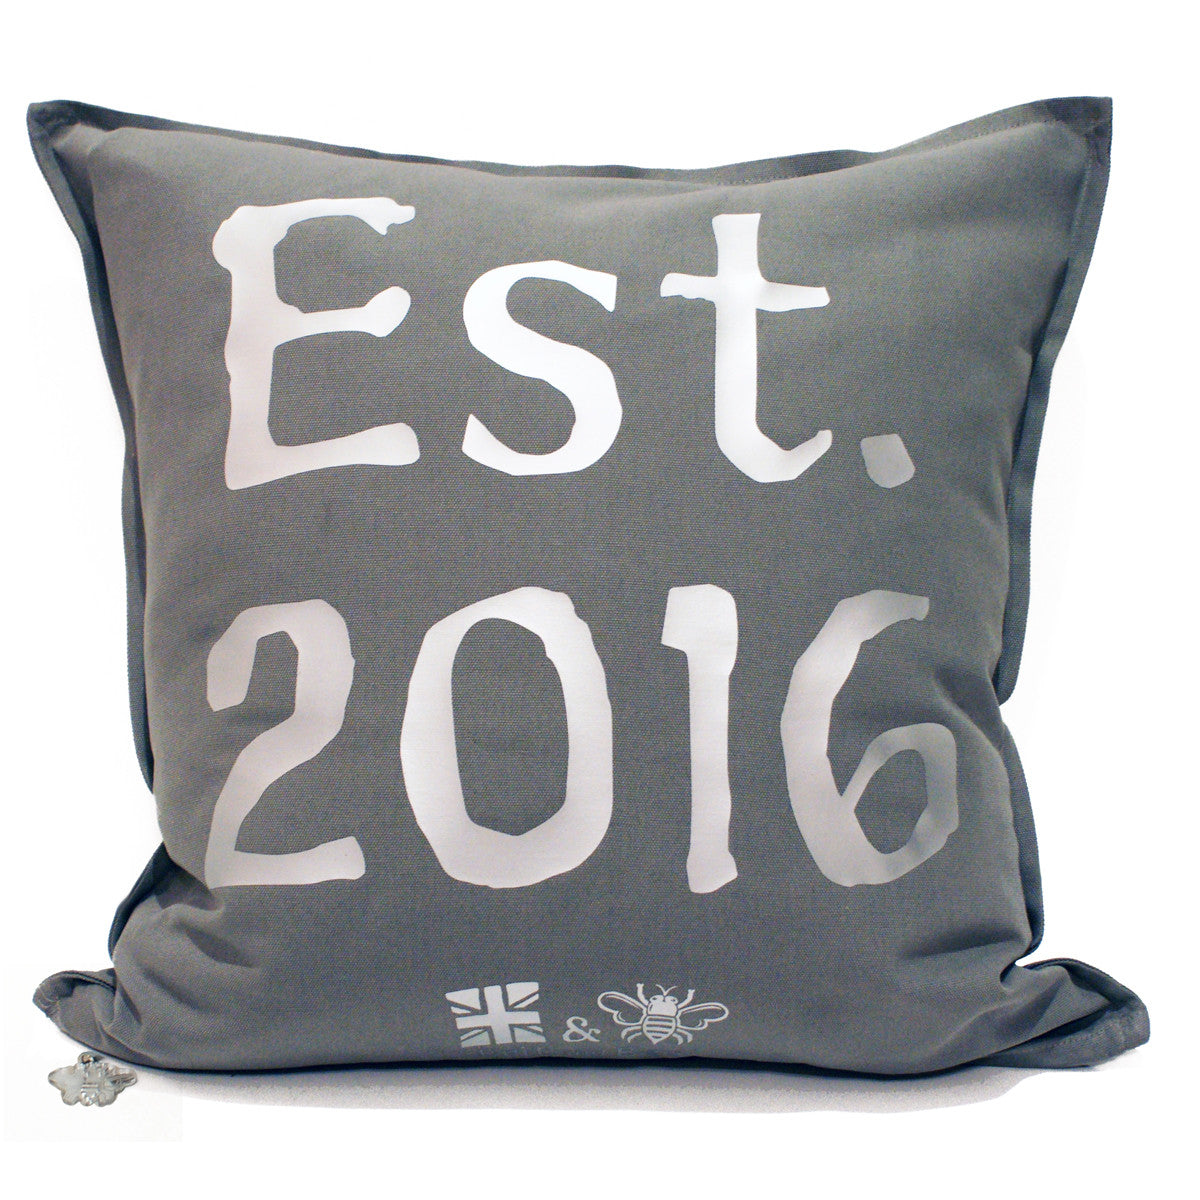 Brit and Bee Est. Throw Pillow Silver - BACK